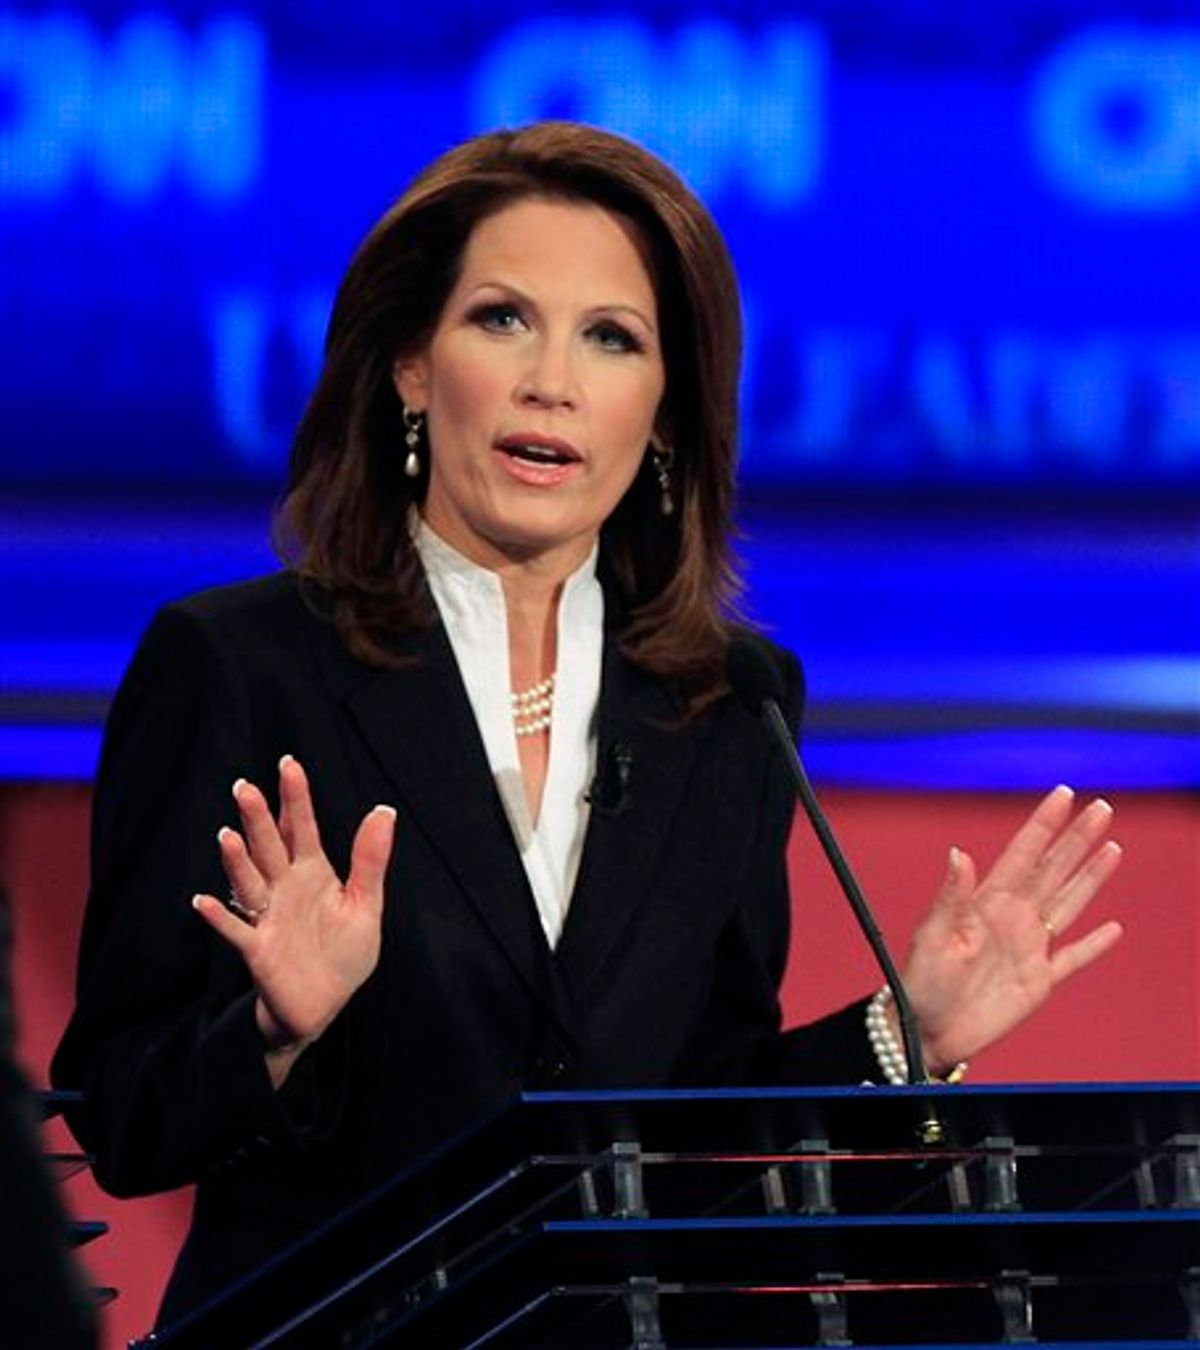 Rep. Michele Bachmann, R-Minn., answers a question during the first New Hampshire Republican presidential debate at St. Anselm College in Manchester, N.H., Monday, June 13, 2011. (AP Photo/Jim Cole) (AP)